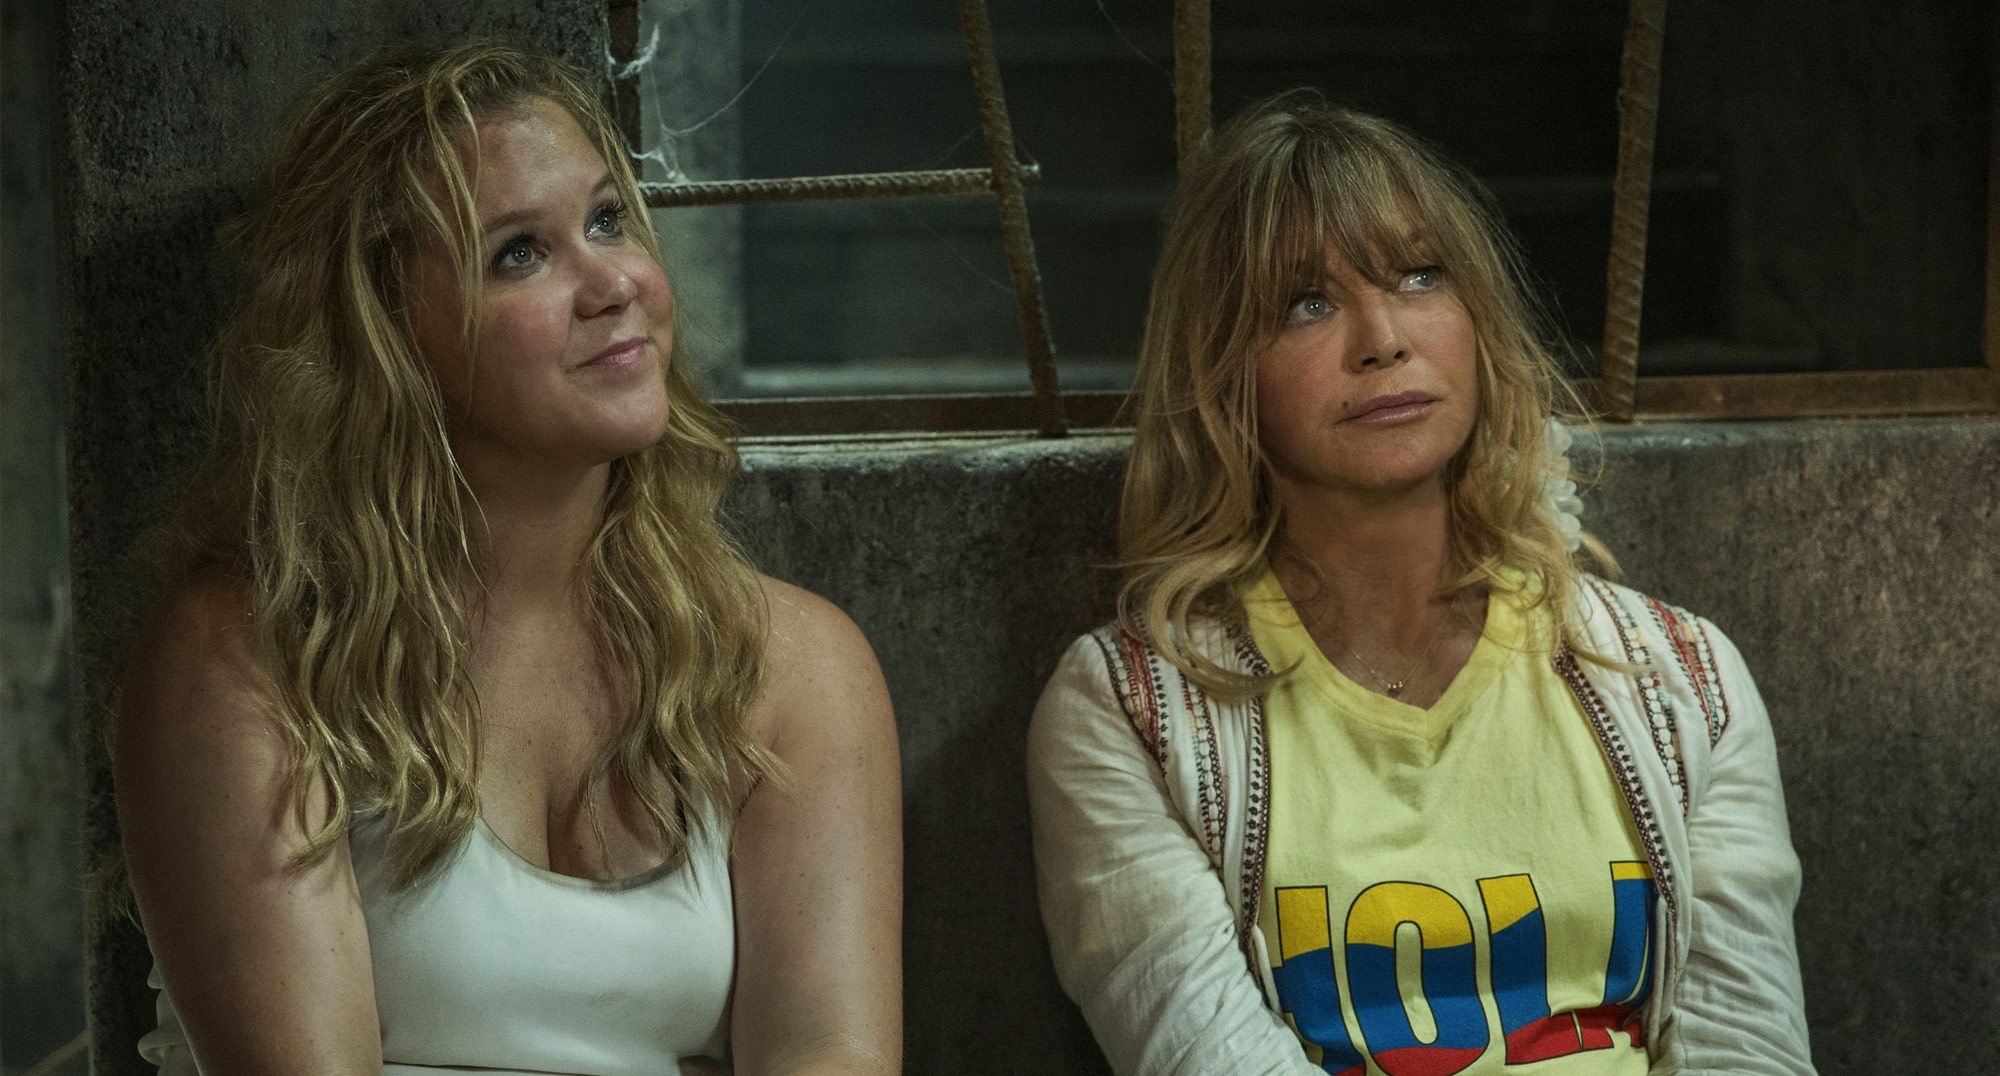 'snatched' movie review, goldie hawn, amy schumer, lucas mirabella